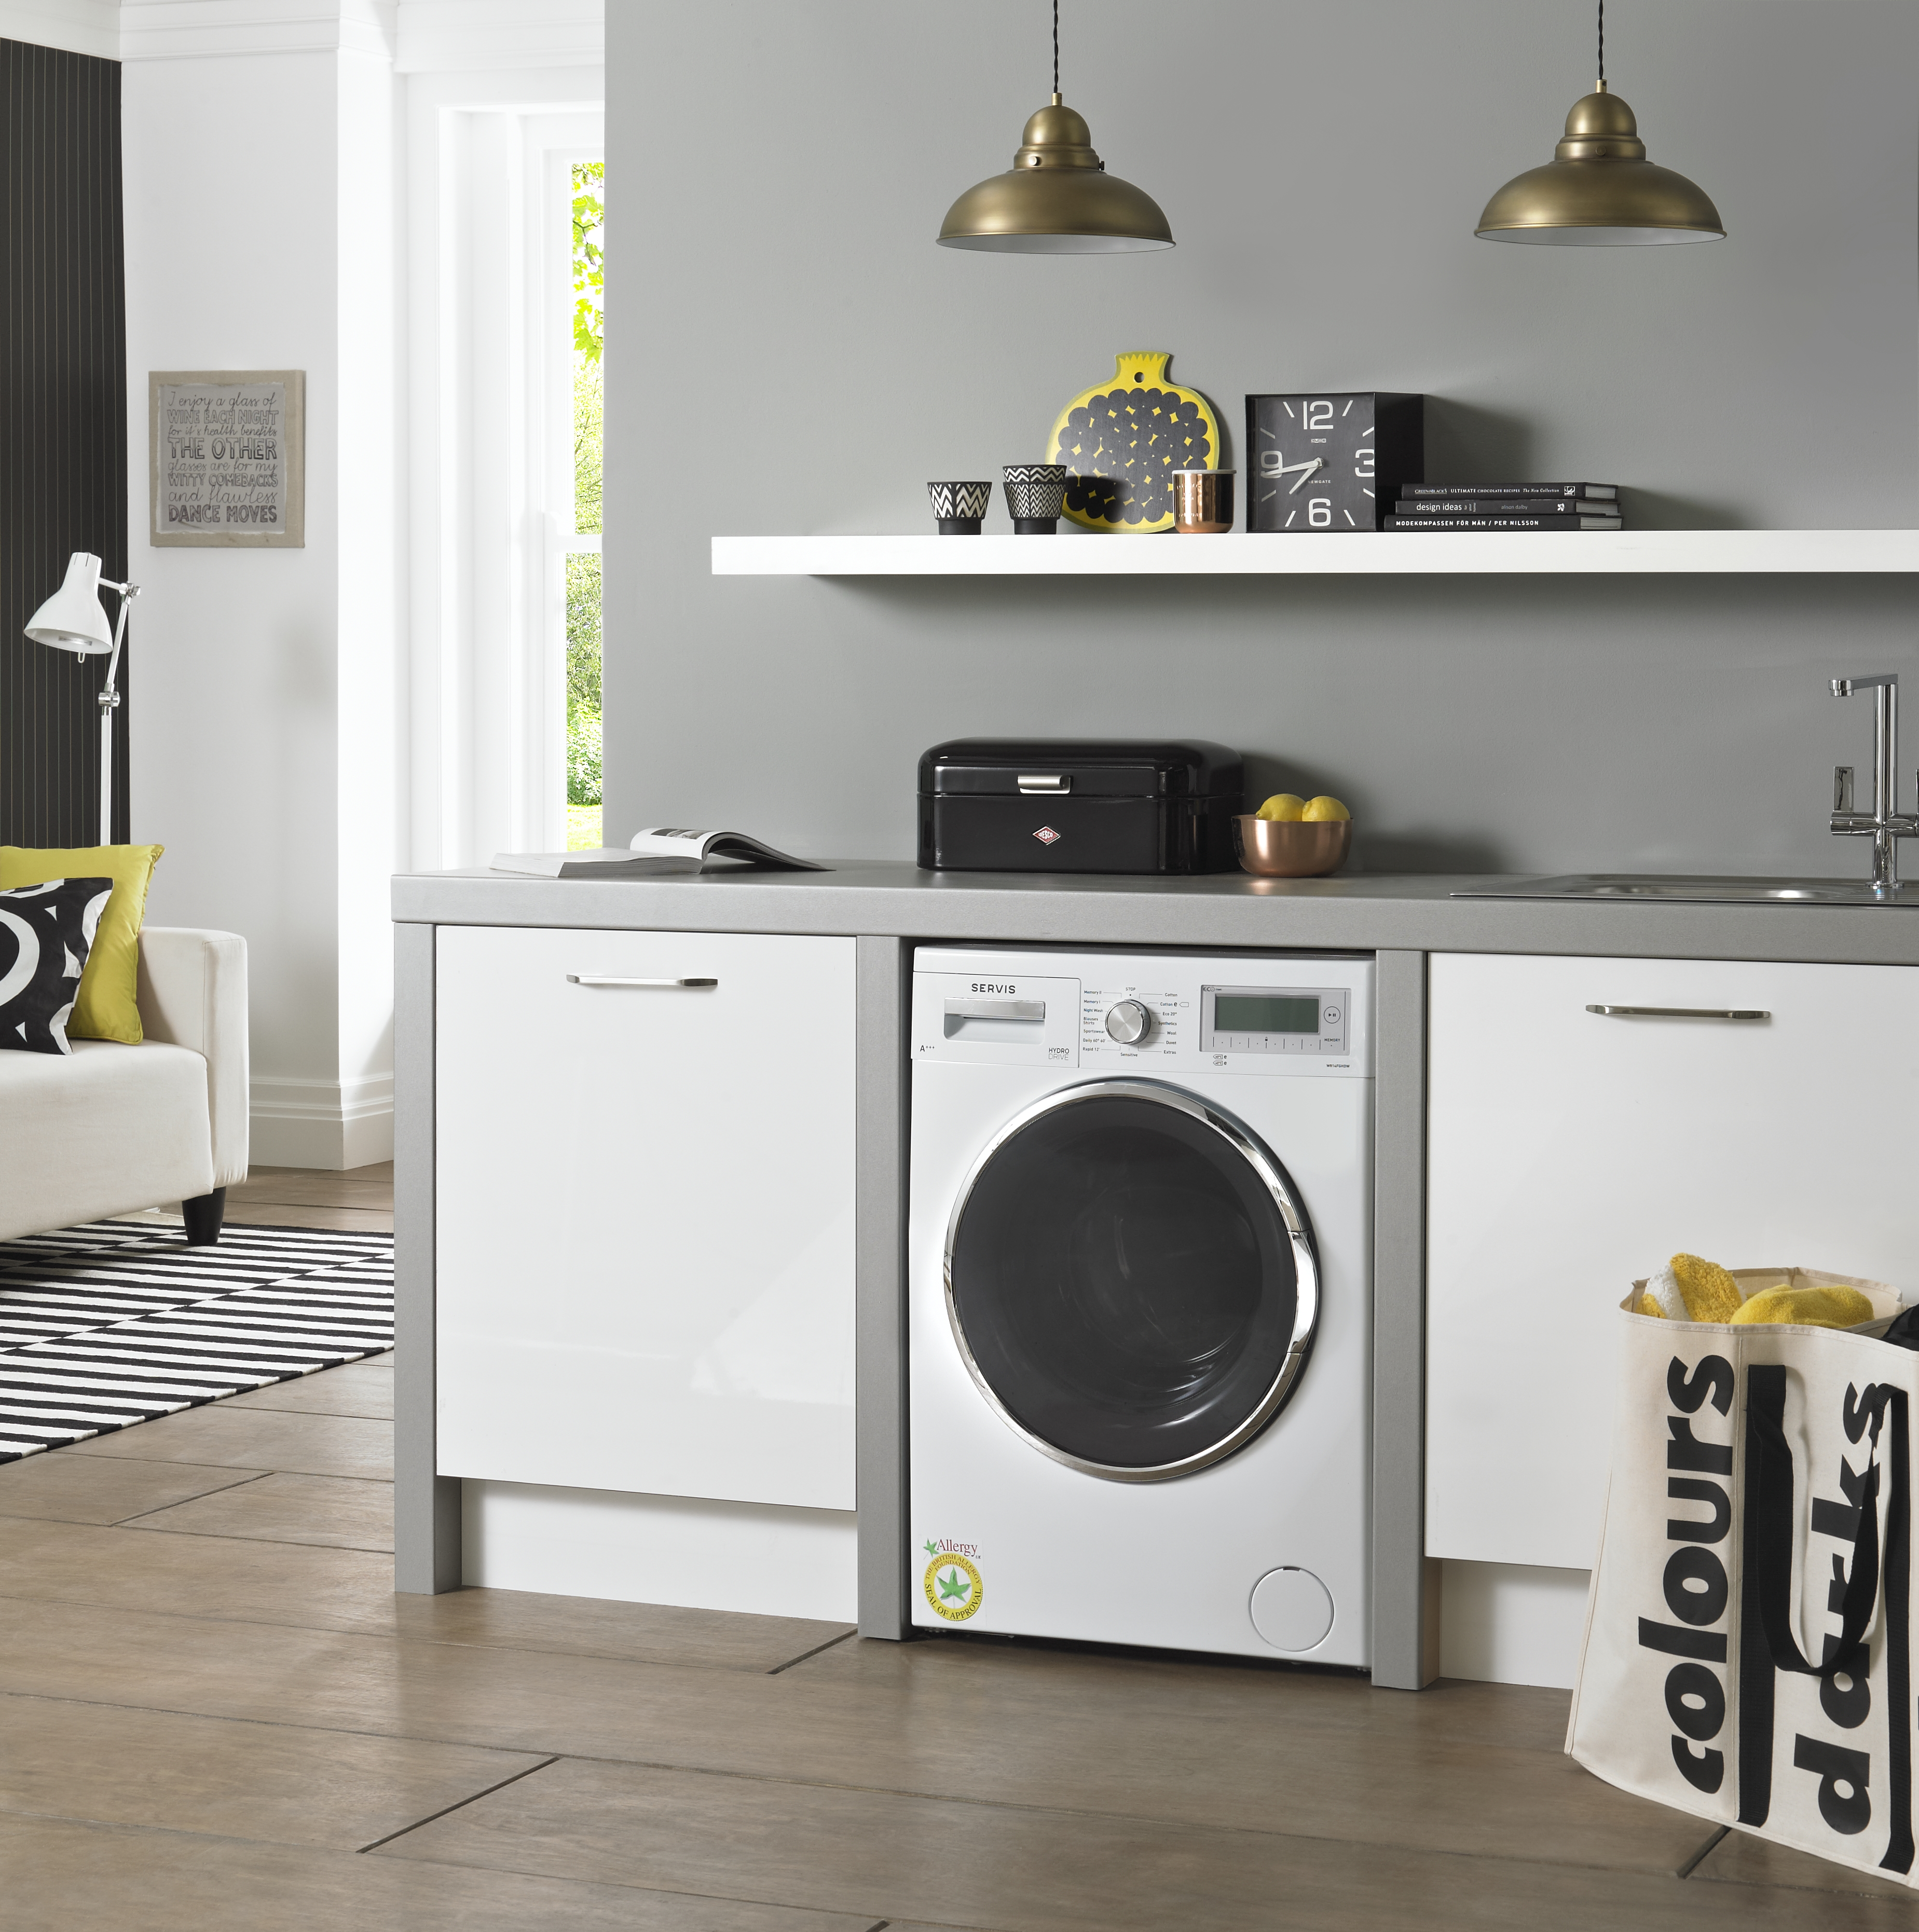 Lego Küchenmöbel Servis Washing Machines It Don 39t Matter If You 39re Black